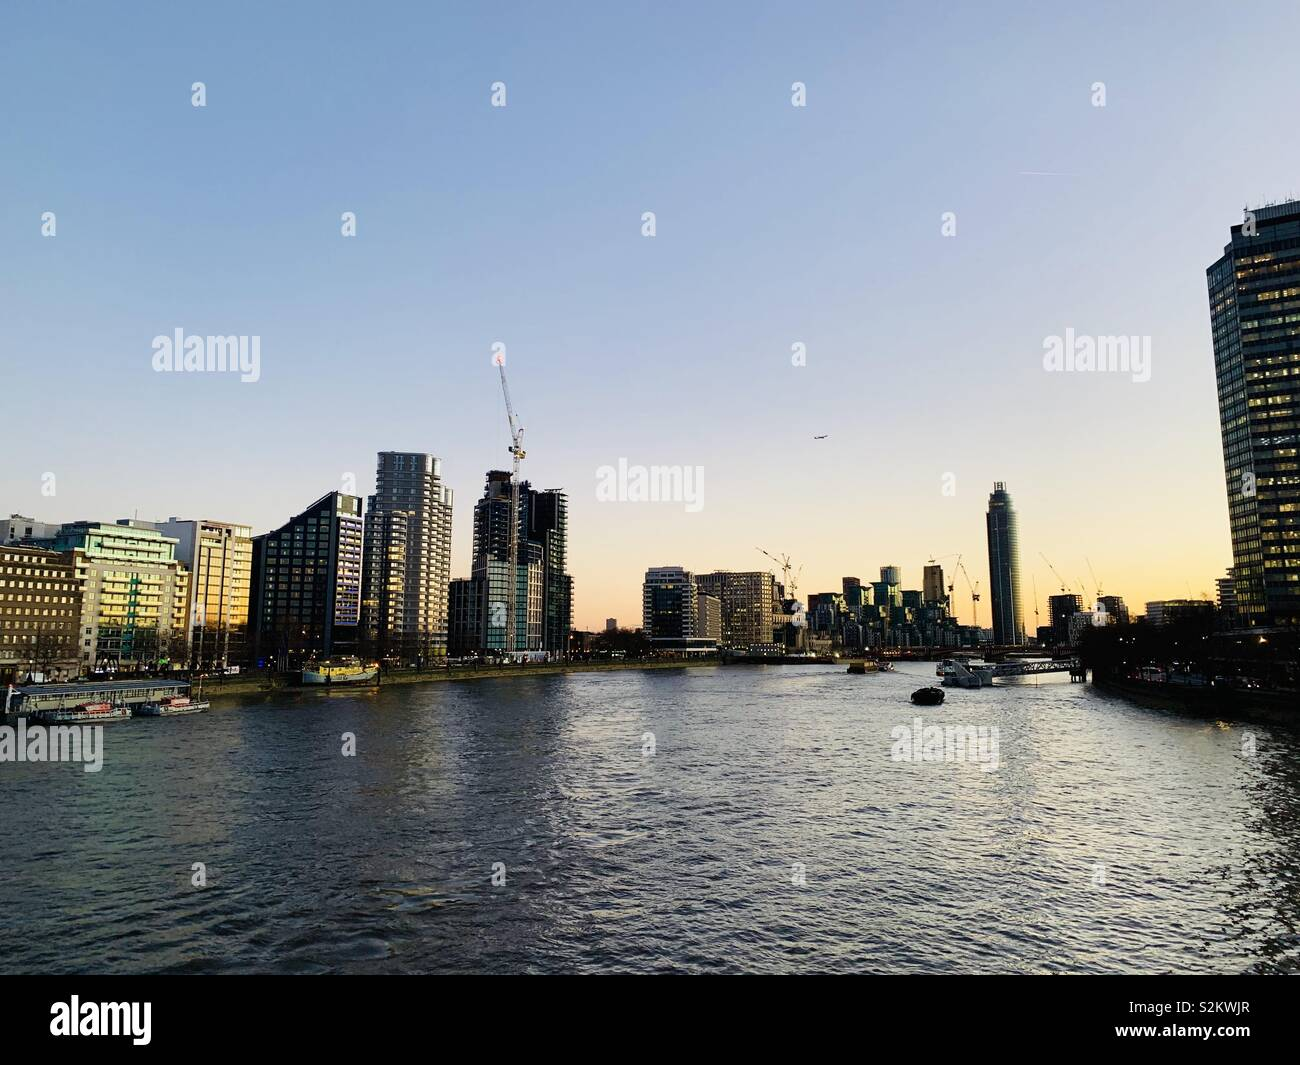 London Vauxhall's urban riverside cityscape with the government's MI6 headquarters (from James Bond) in the background. No commercially branded buildings visible - Stock Image